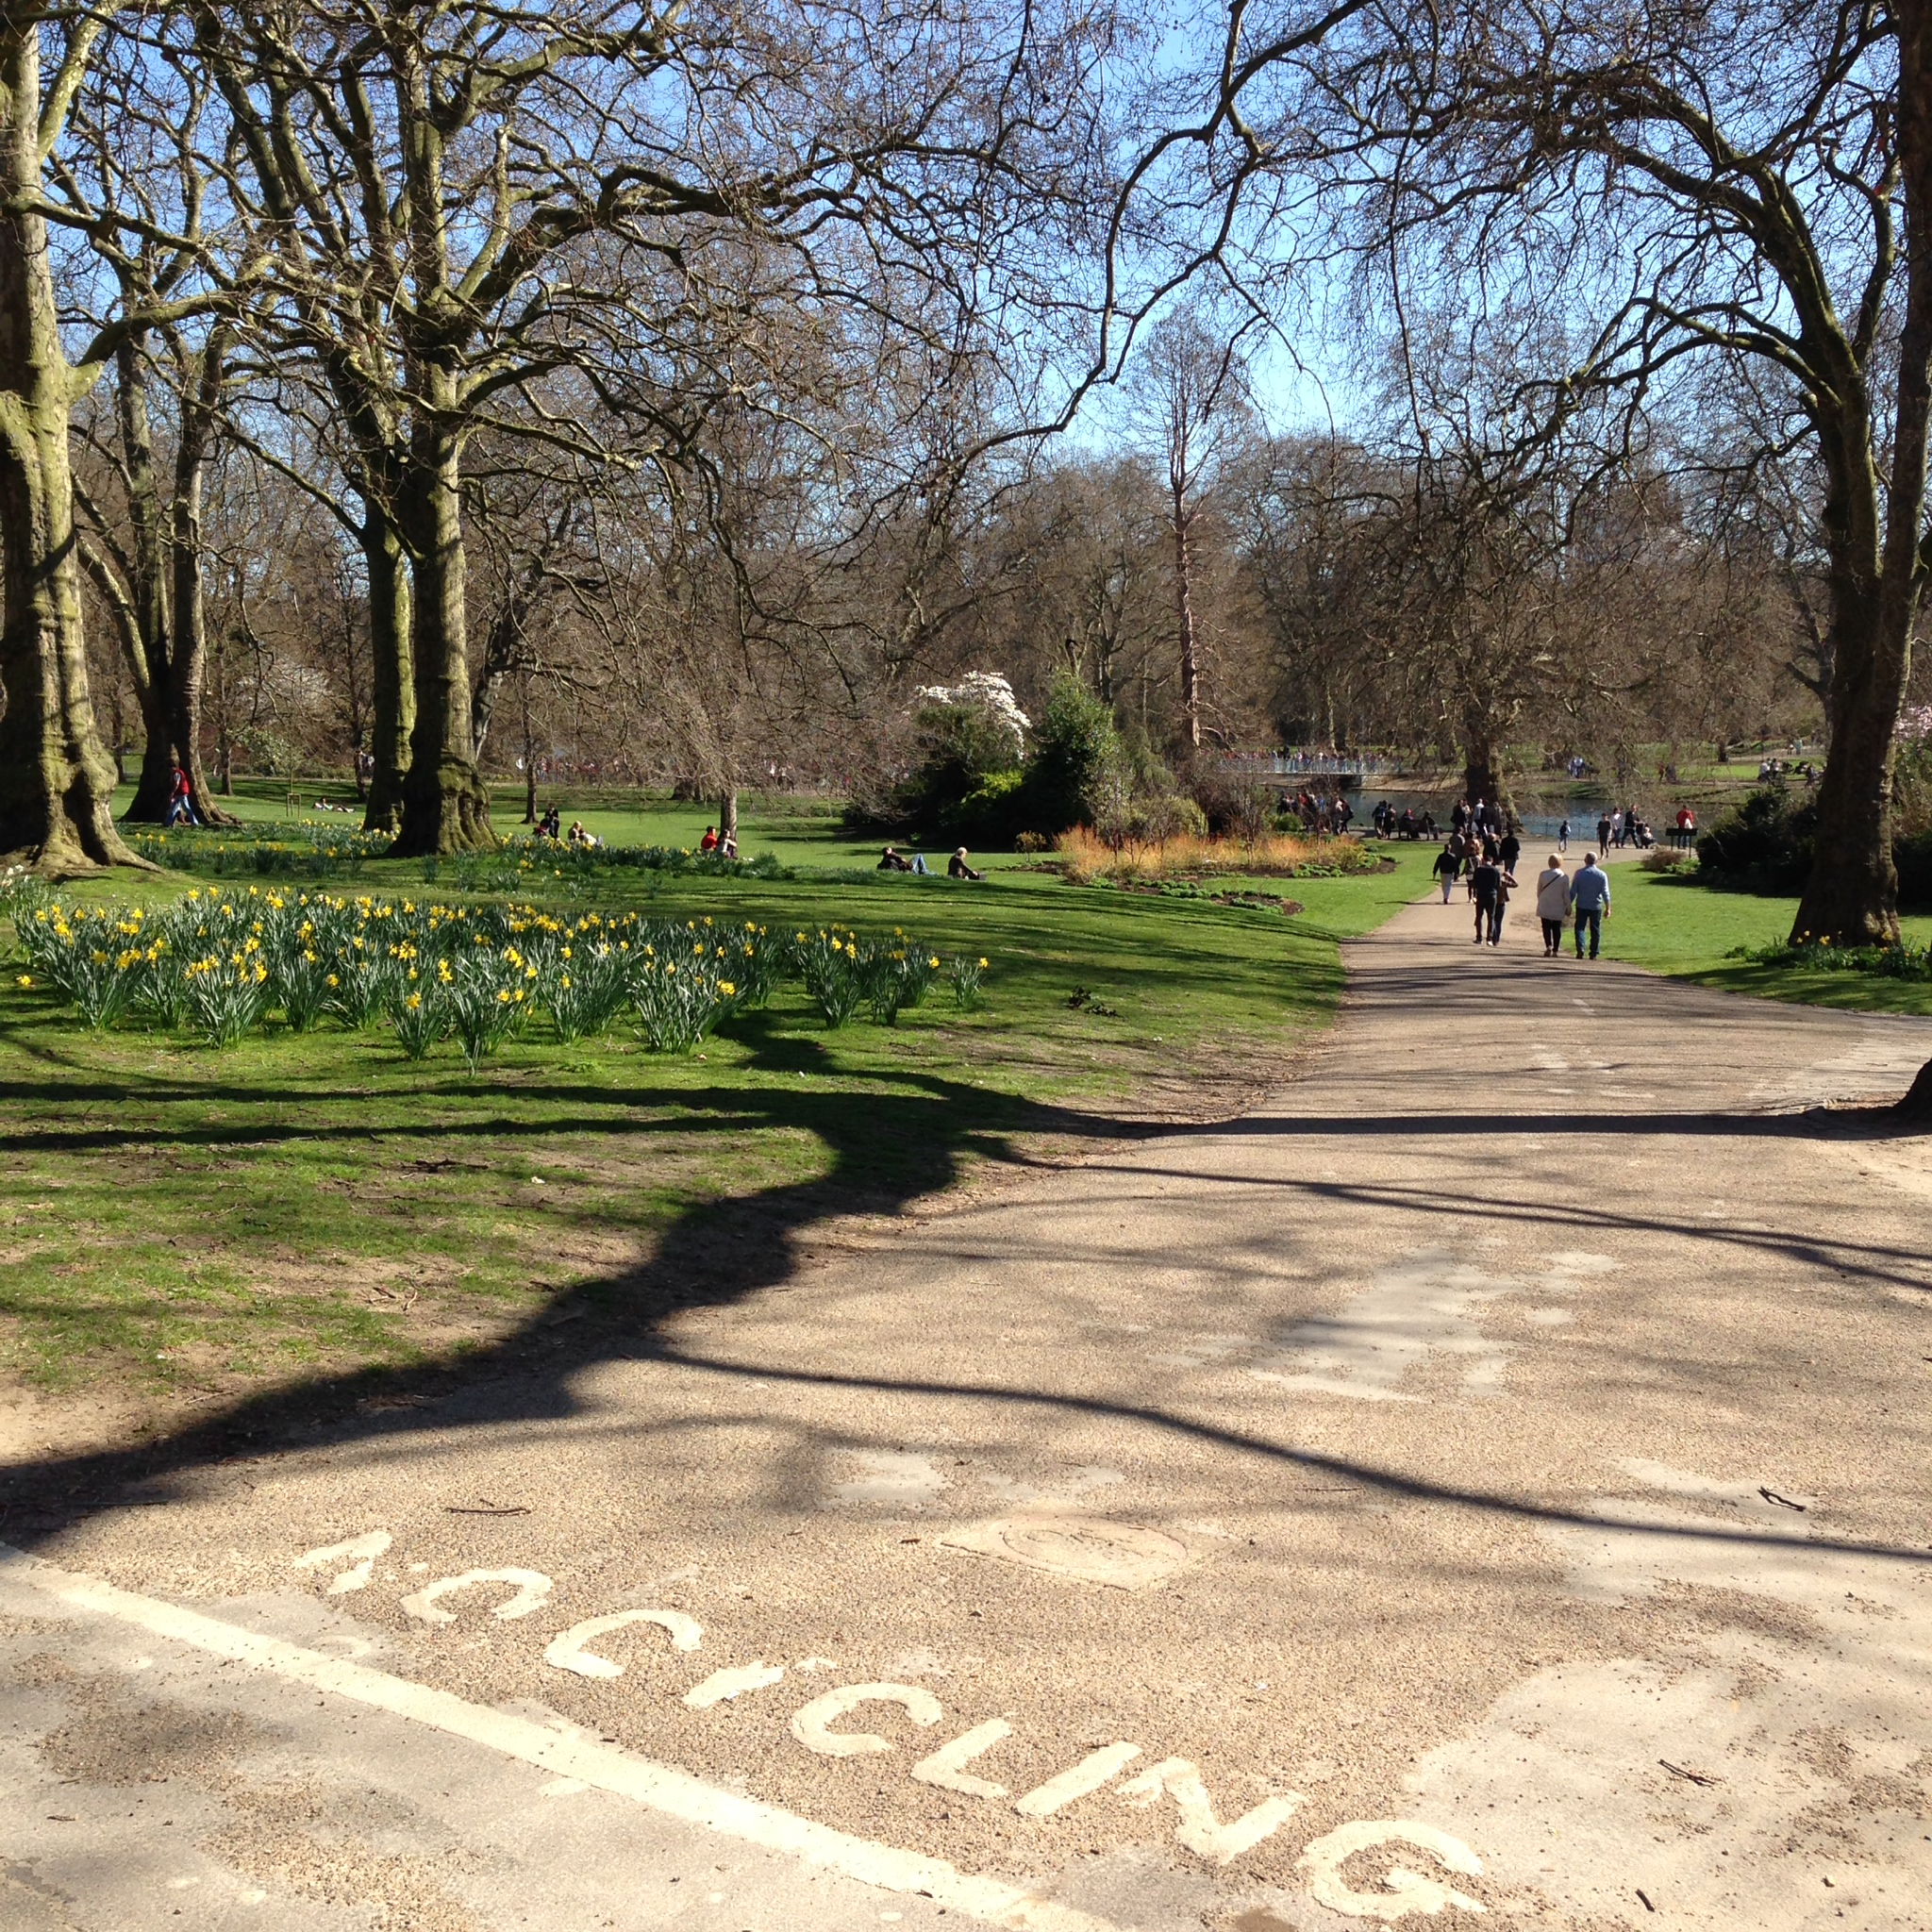 St. James Park. Such a shame we couldn't ride around in there.